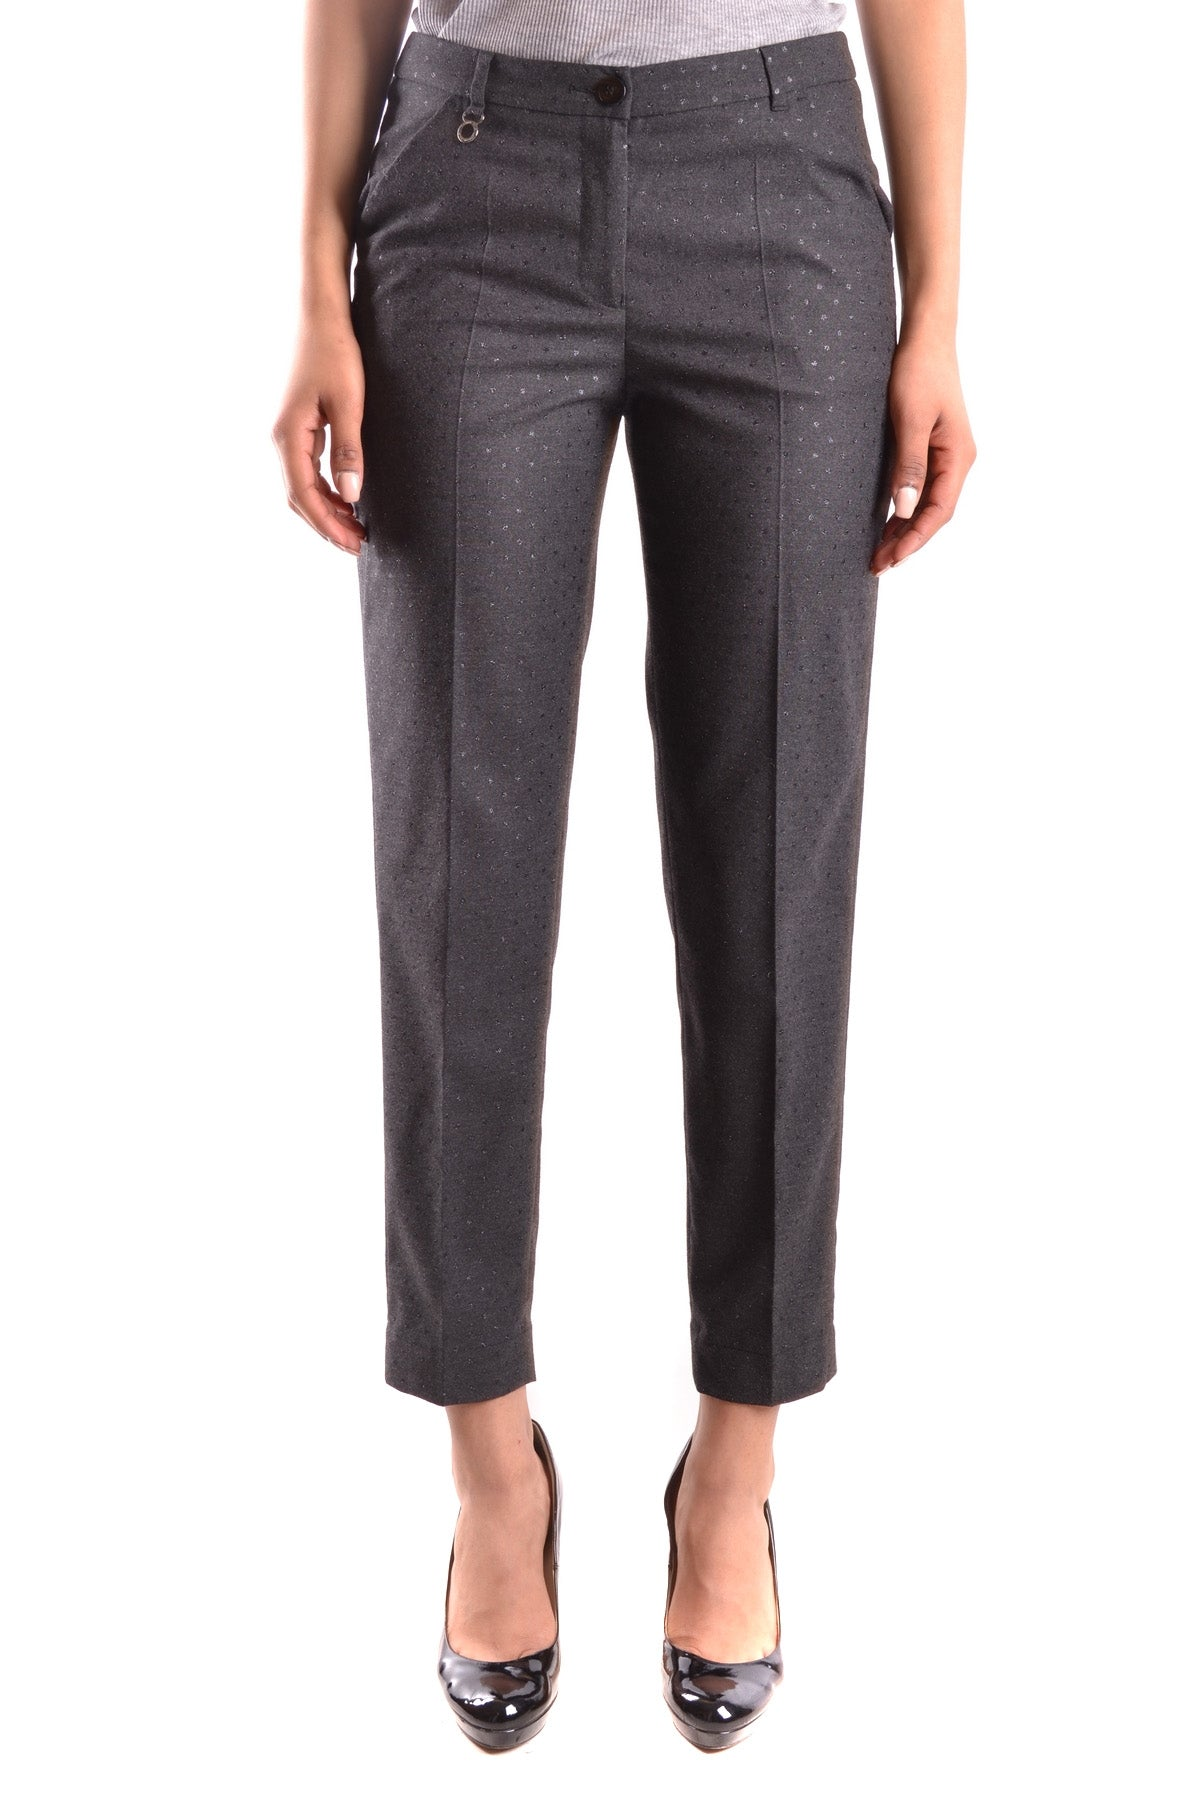 Trousers Armani Jeans-Trousers - WOMAN-38-Product Details Terms: New With LabelYear: 2017Main Color: GrayGender: WomanMade In: RomaniaSize: ItSeason: Fall / WinterClothing Type: TrousersComposition: Elastane 3%, Polyester 63%, Viscose 34%-Keyomi-Sook